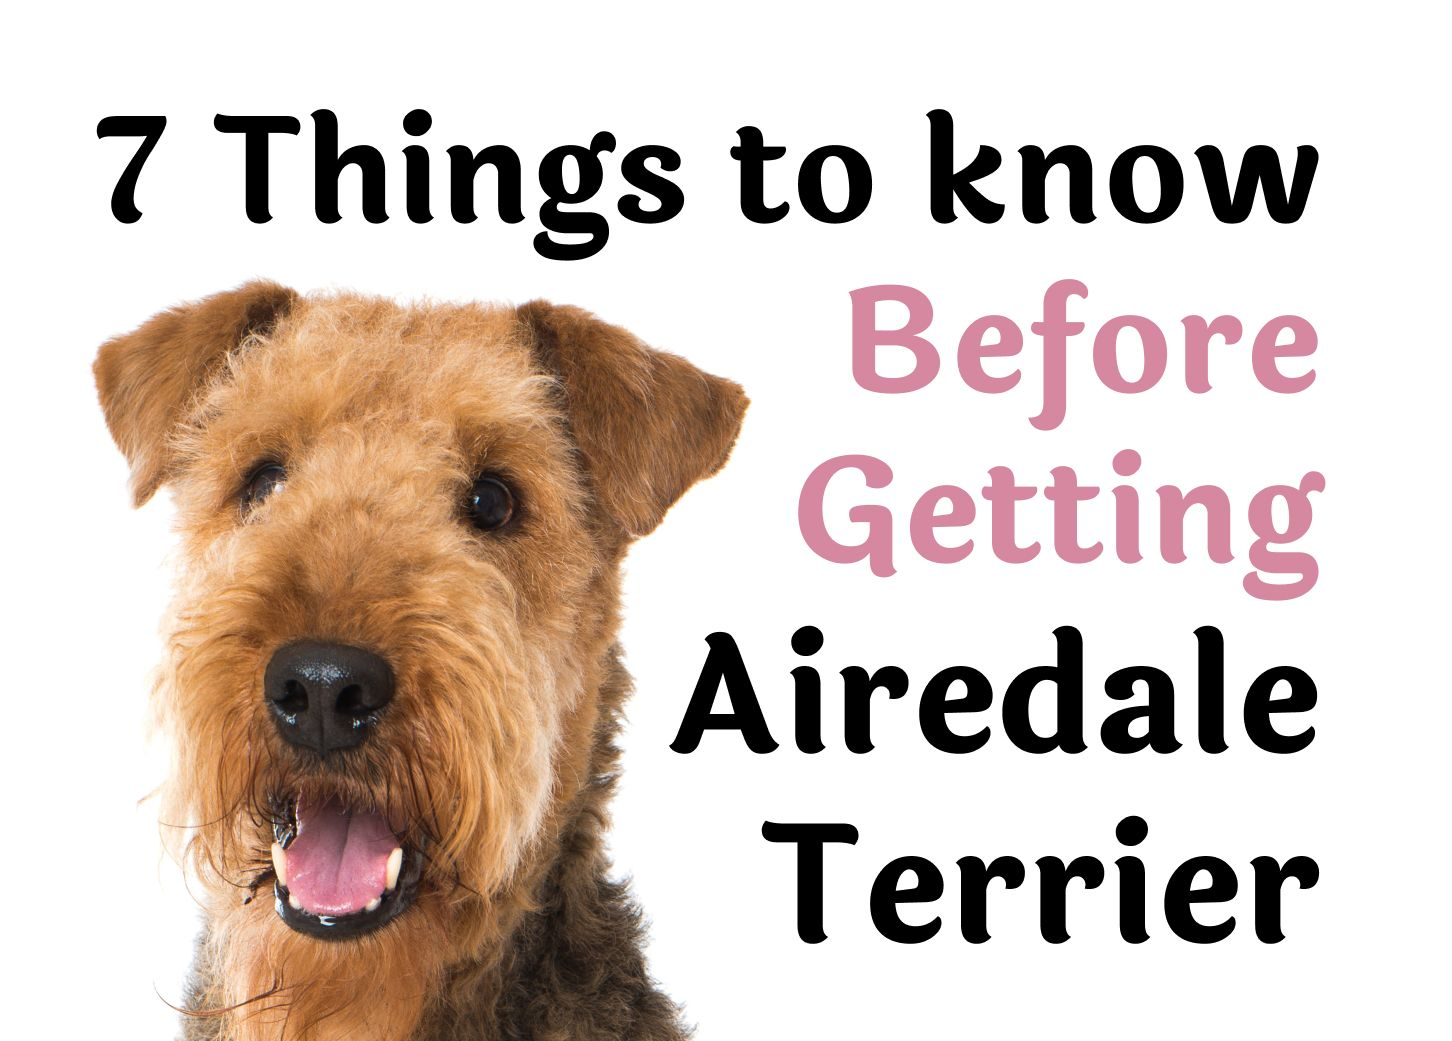 7 Things to Consider Before Getting an Airedale Terrier